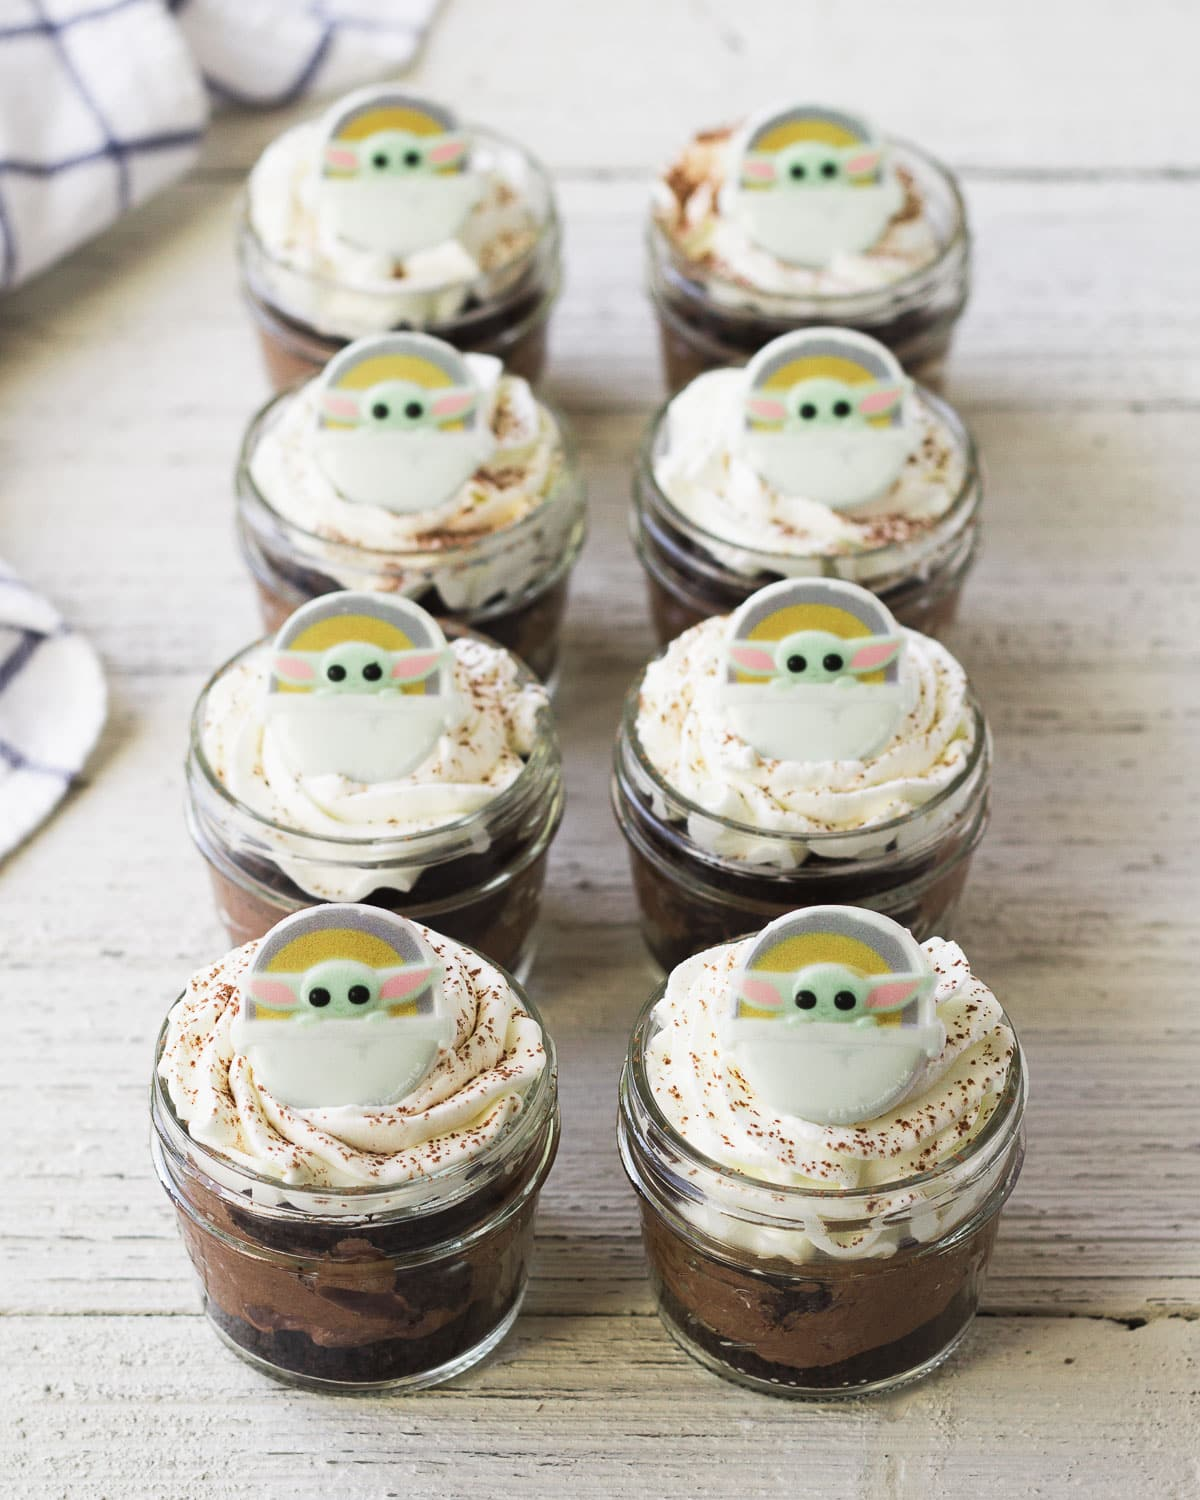 Eight mini layered chocolate desserts topped with Baby Yoda decorations.